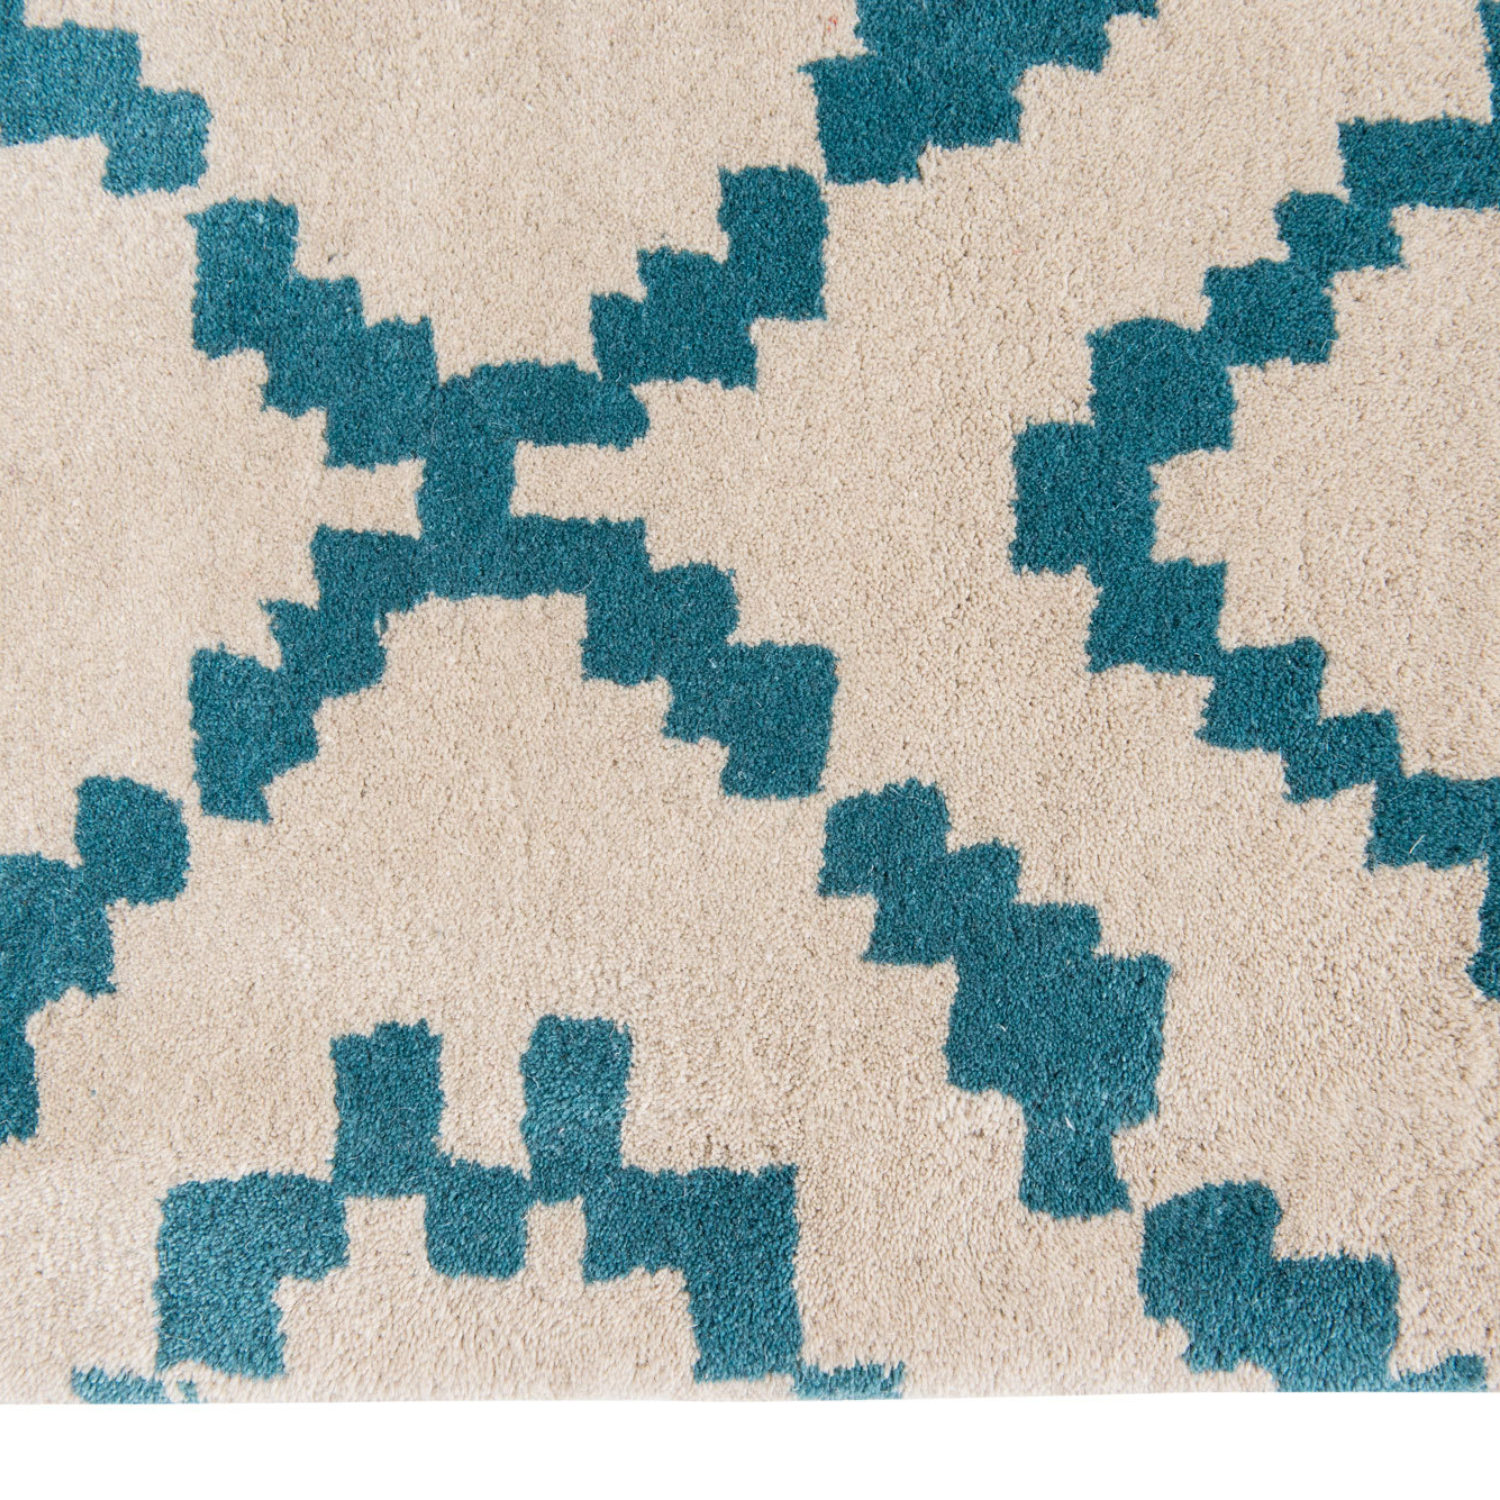 Sami is a striking, folk art inspired, geometric design beautifully recreated as a luxurious hand tufted wool rug.